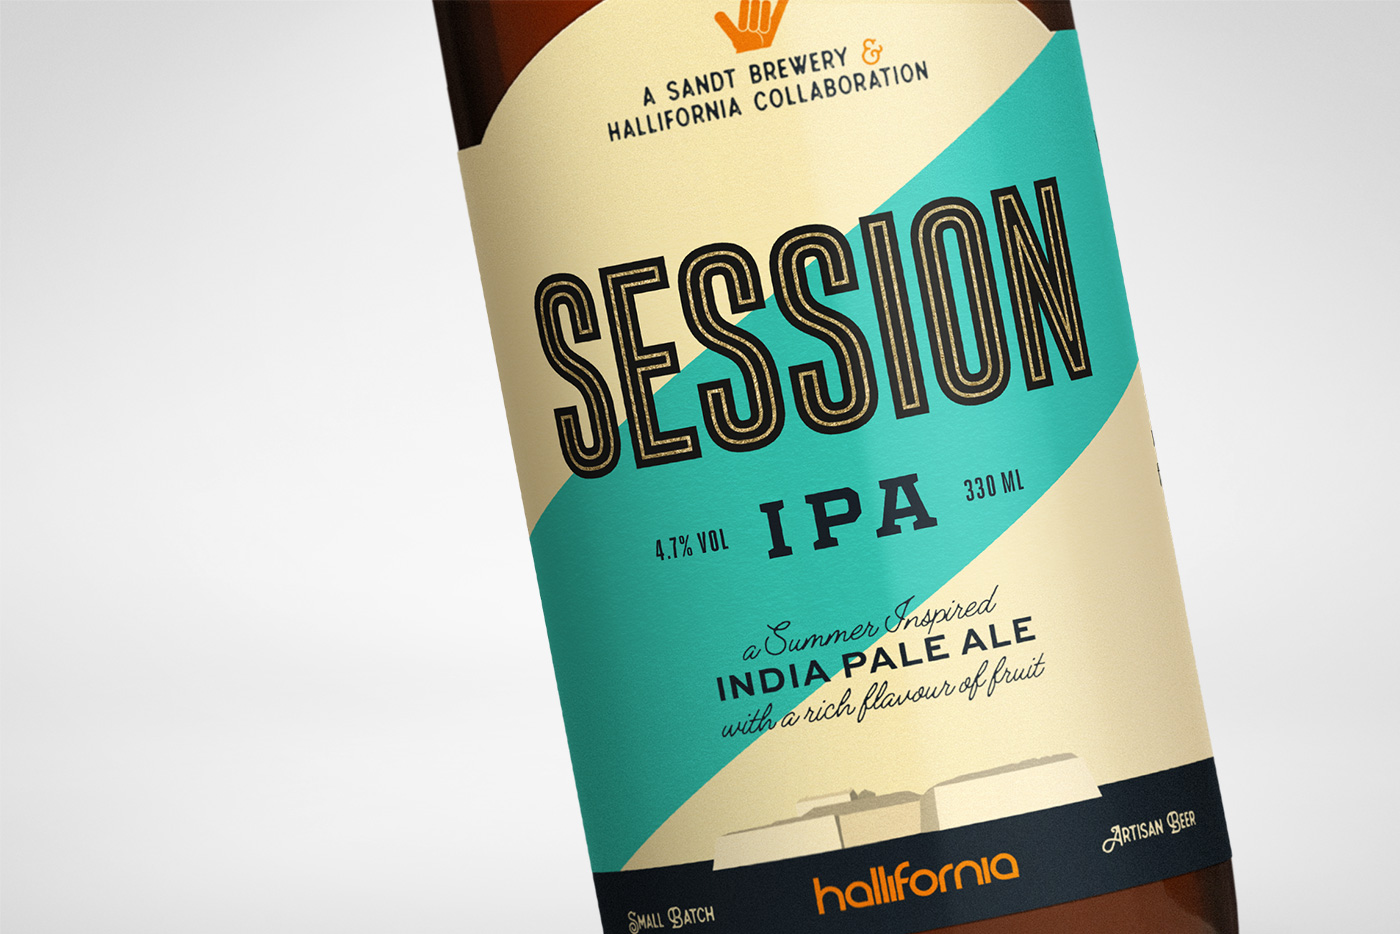 Hallifornia Session IPA